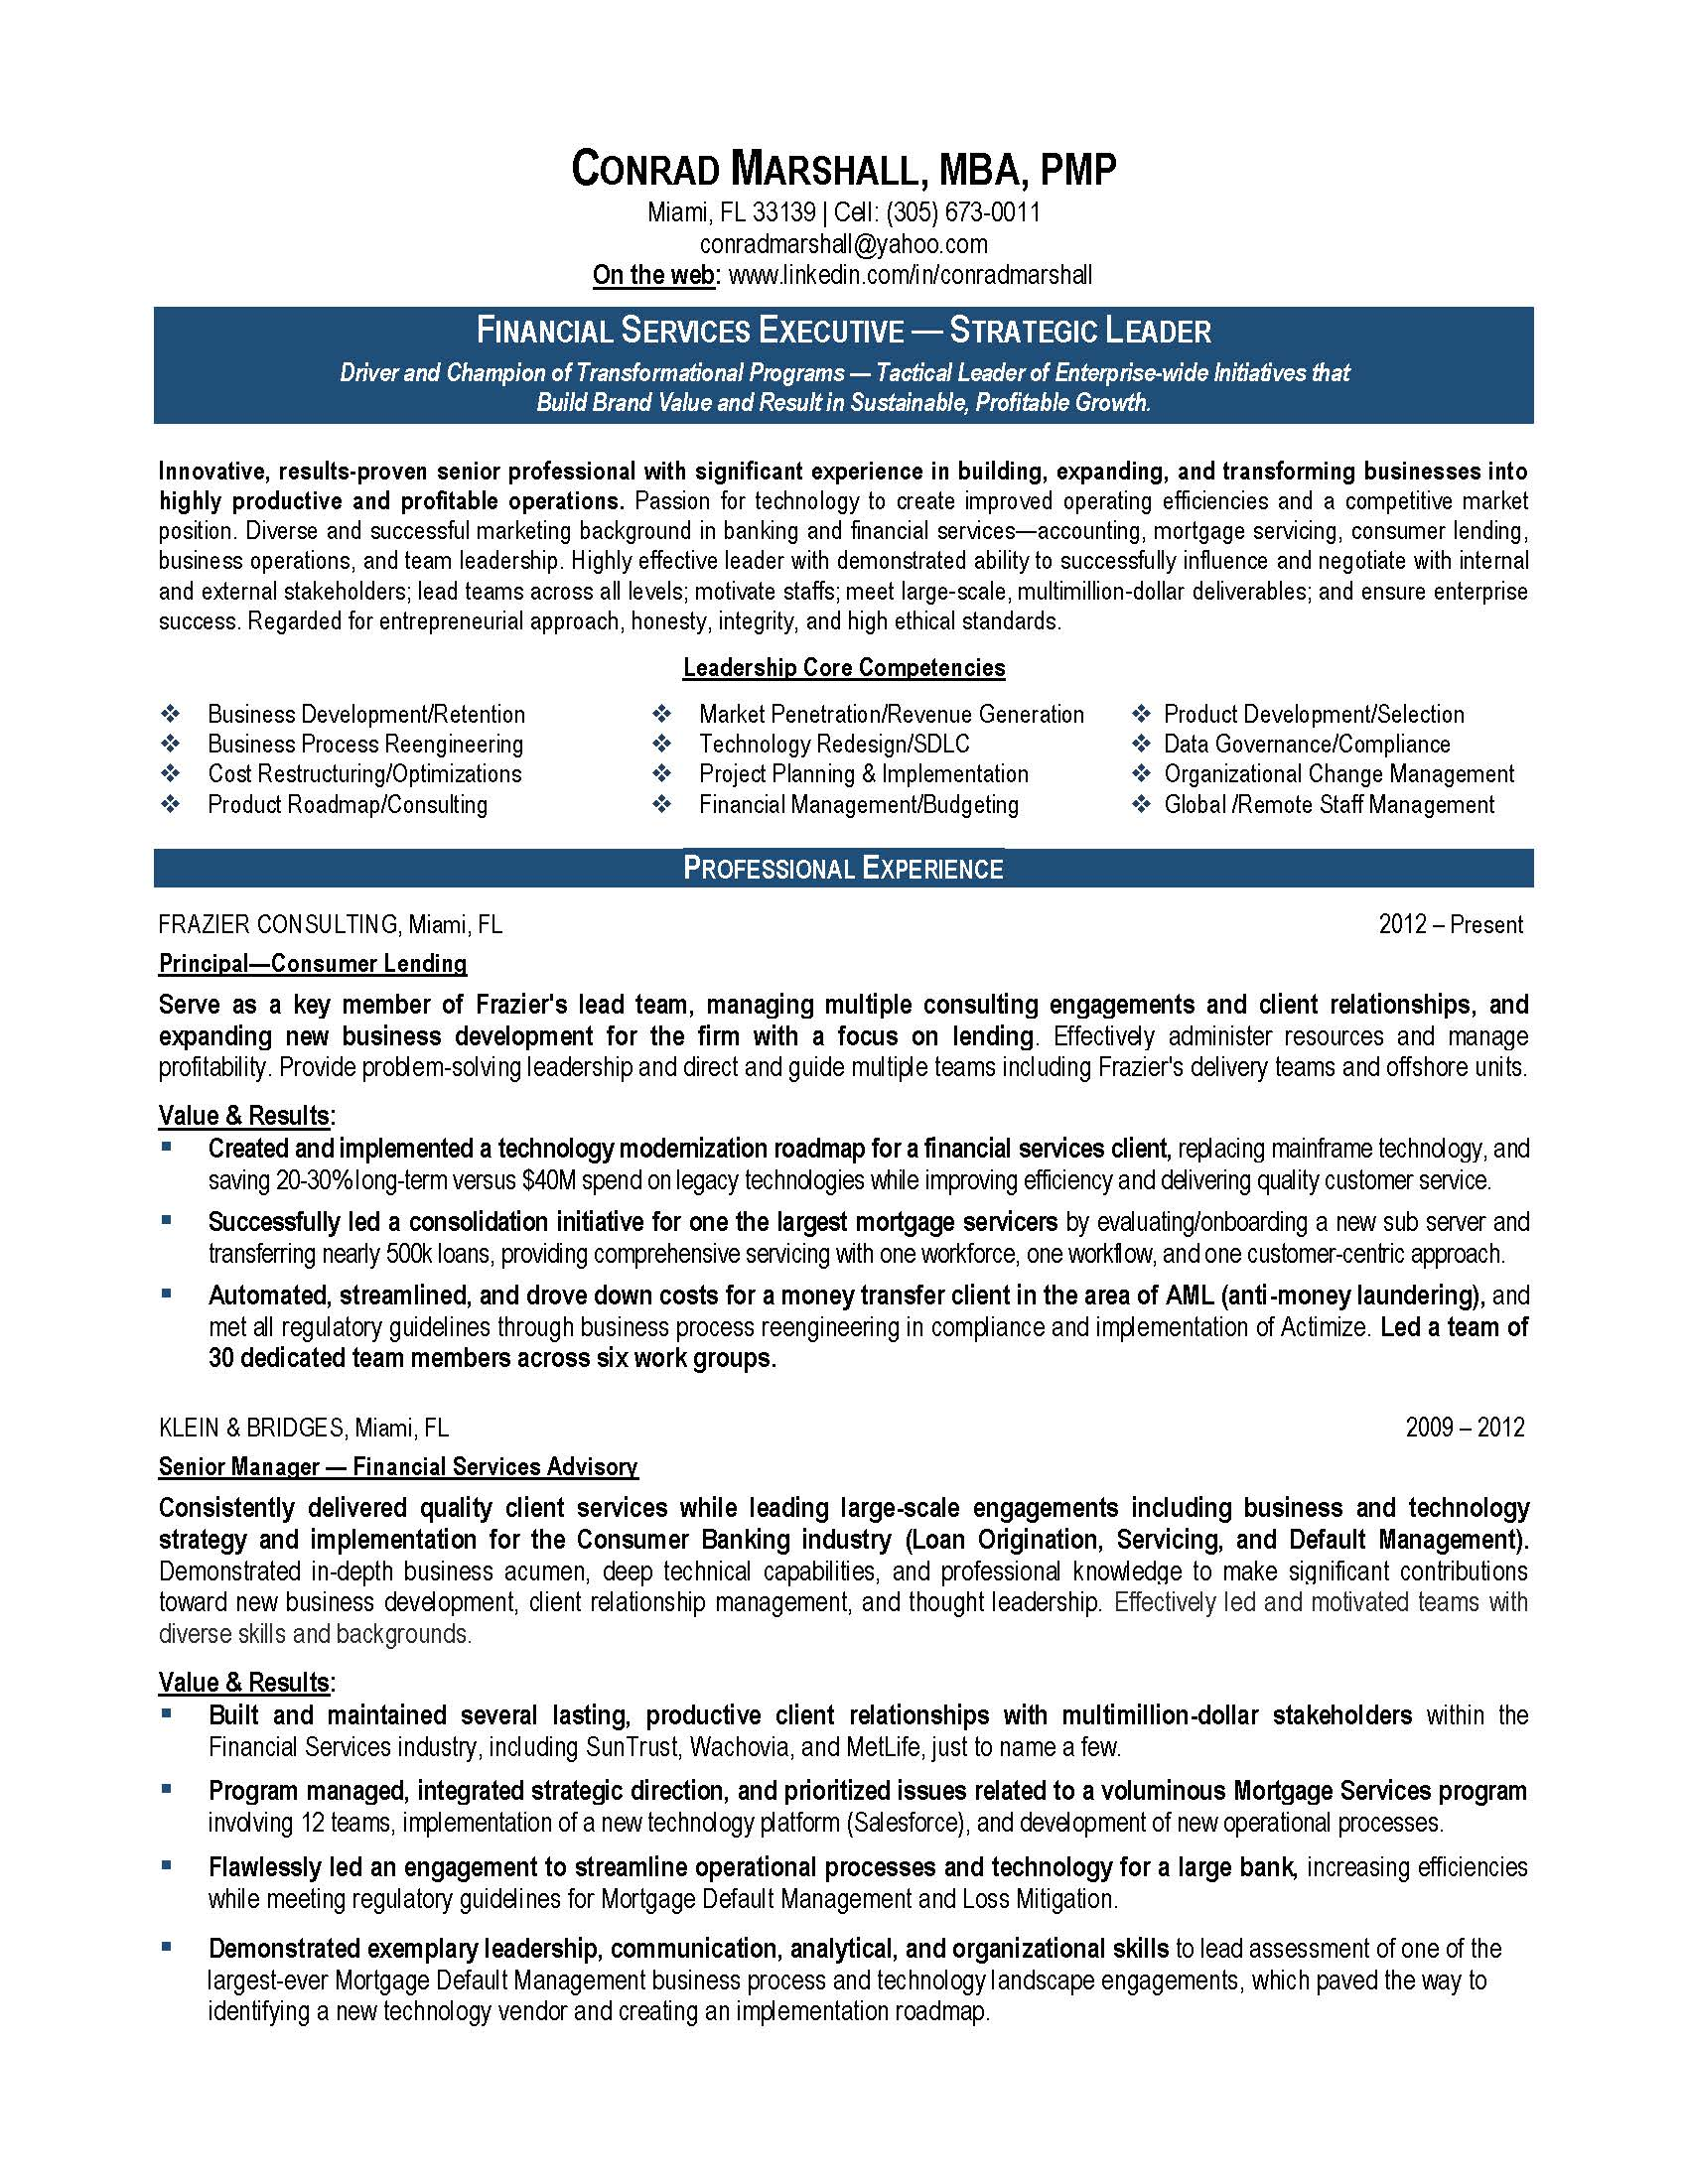 Finance Resume Sample, Provided By Elite Resume Writing Services  Resume Organizational Skills